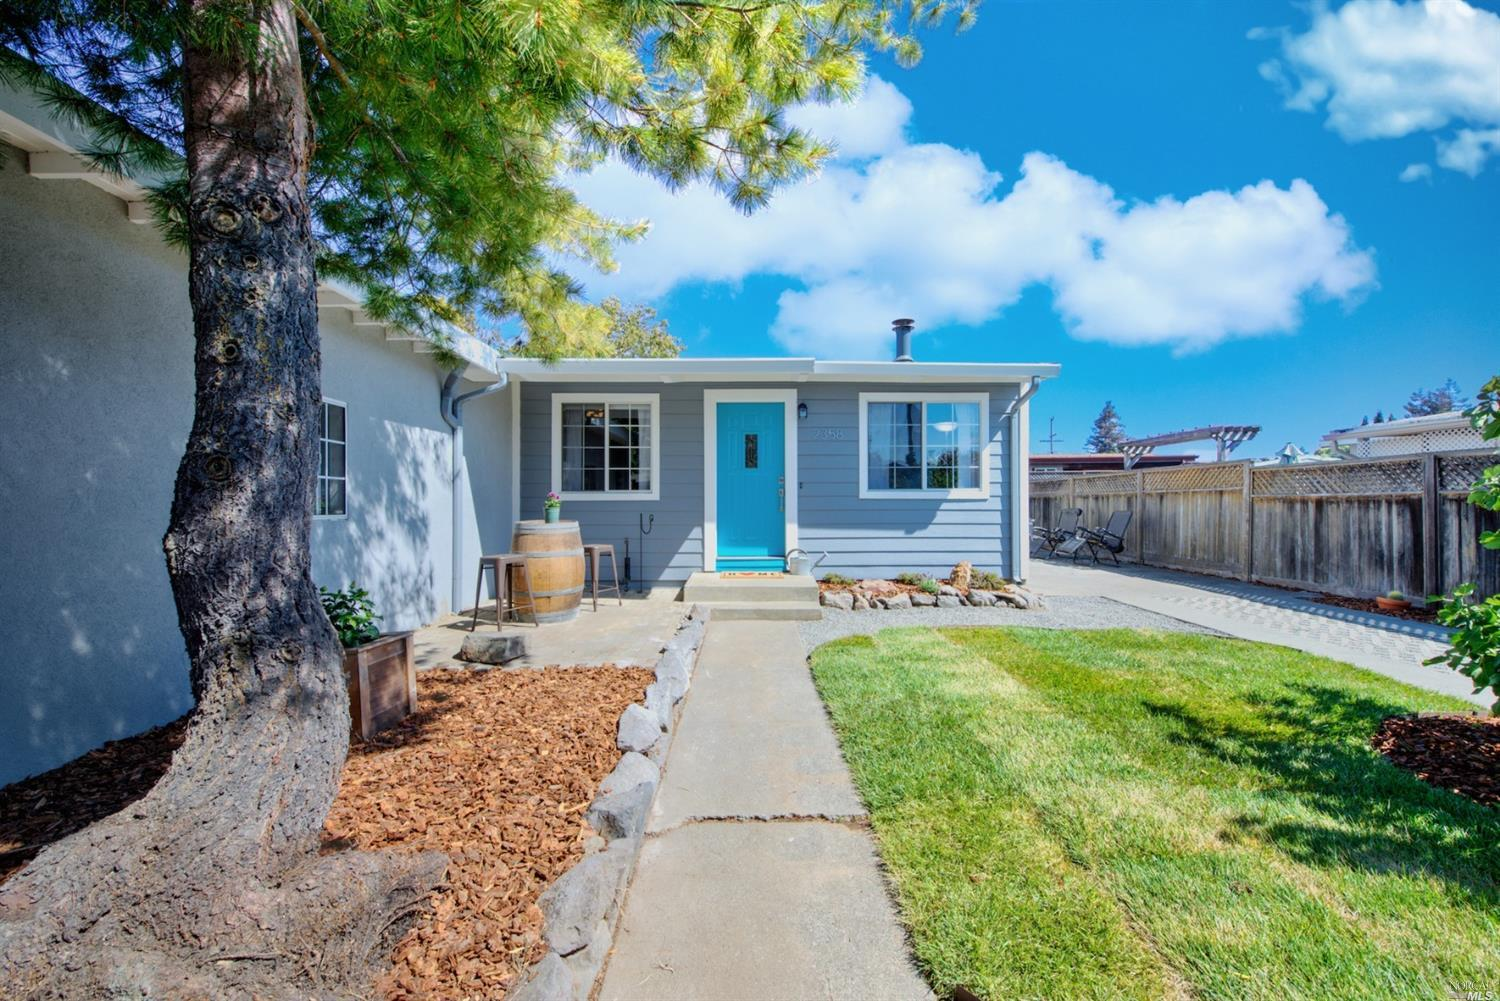 Delightfully updated mid-century modern single level home tucked away within a fully fenced yard. It